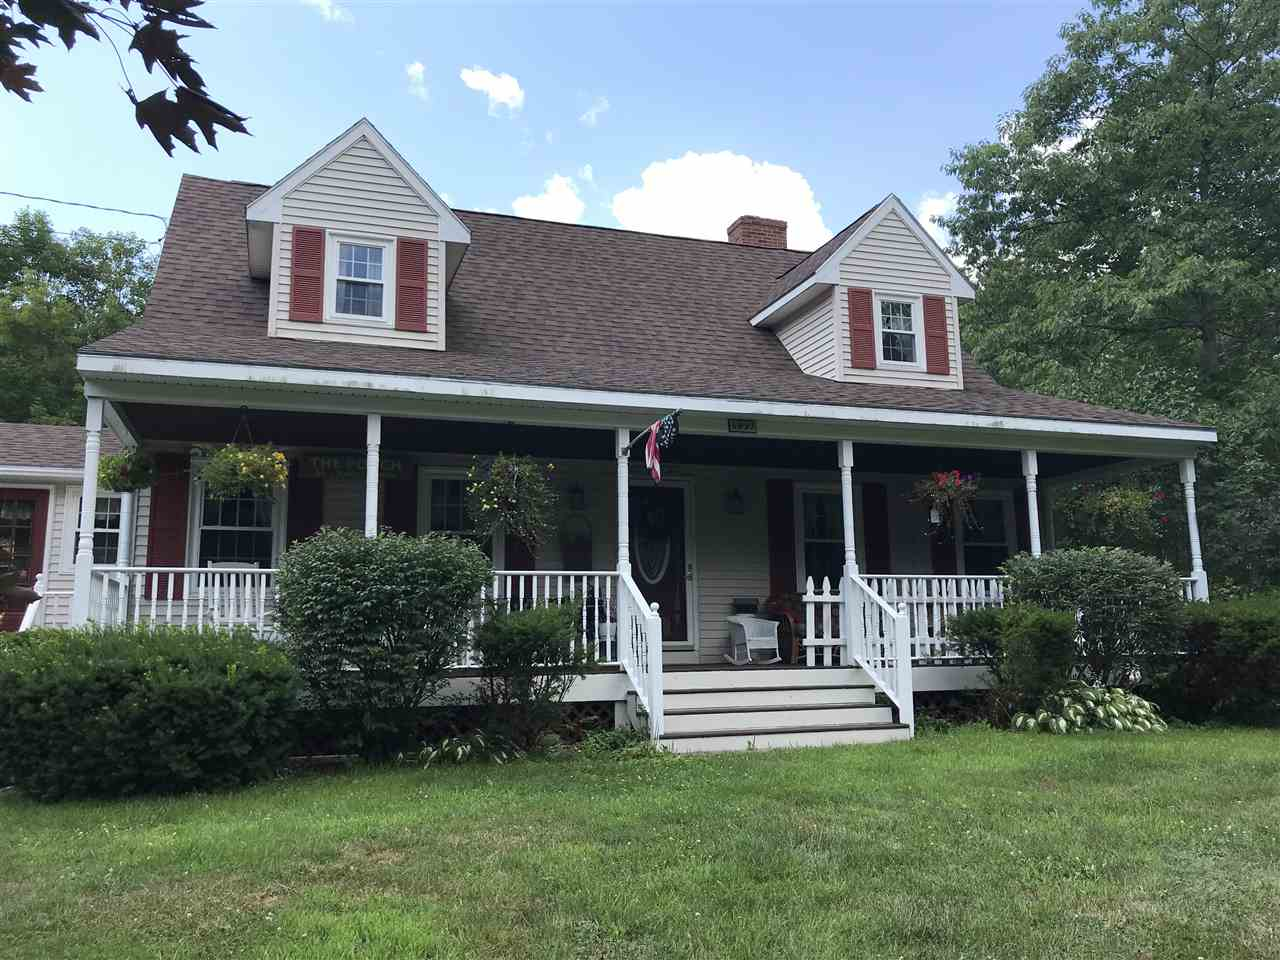 Photo of 158 Brown Hill Road Belmont NH 03220